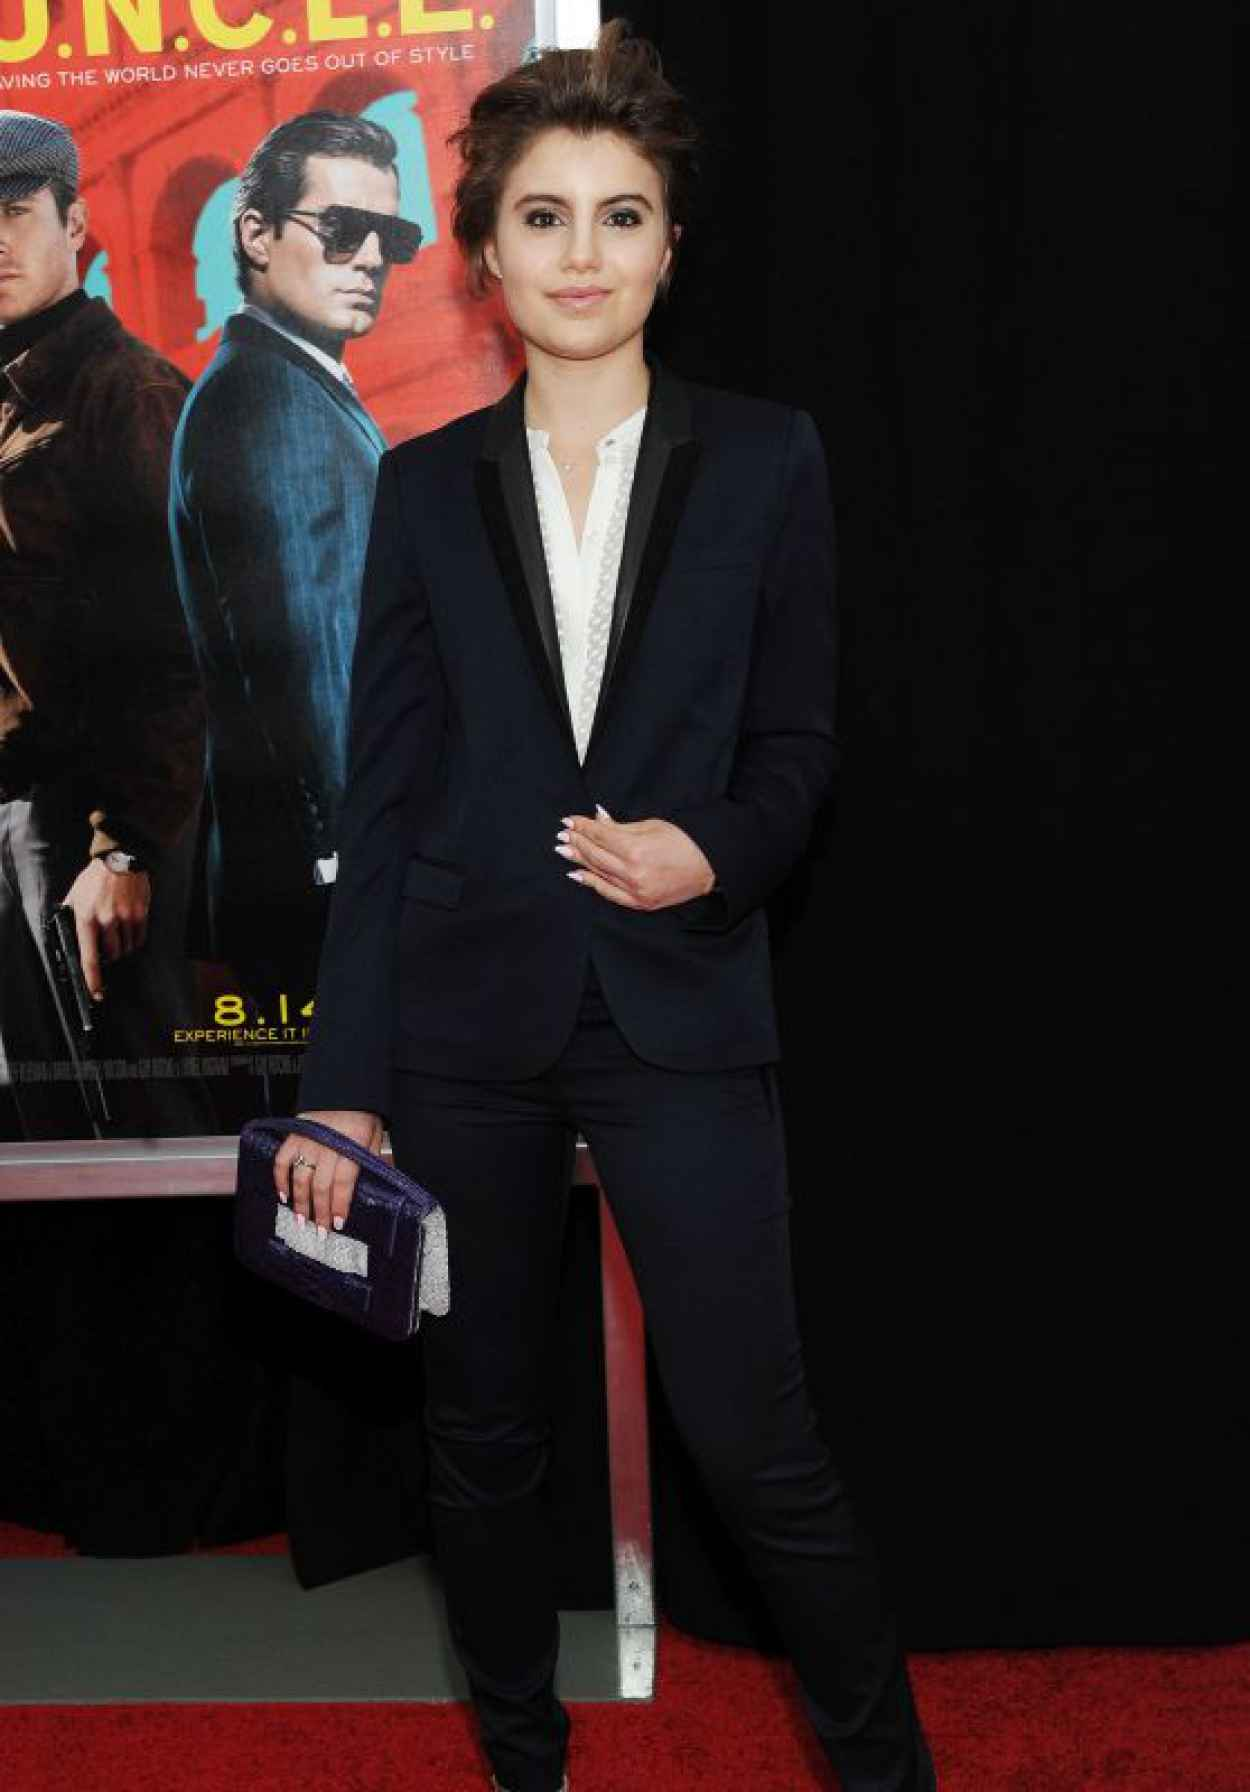 Sami Gayle - The Man From U.N.C.L.E. Premiere in New York City-1